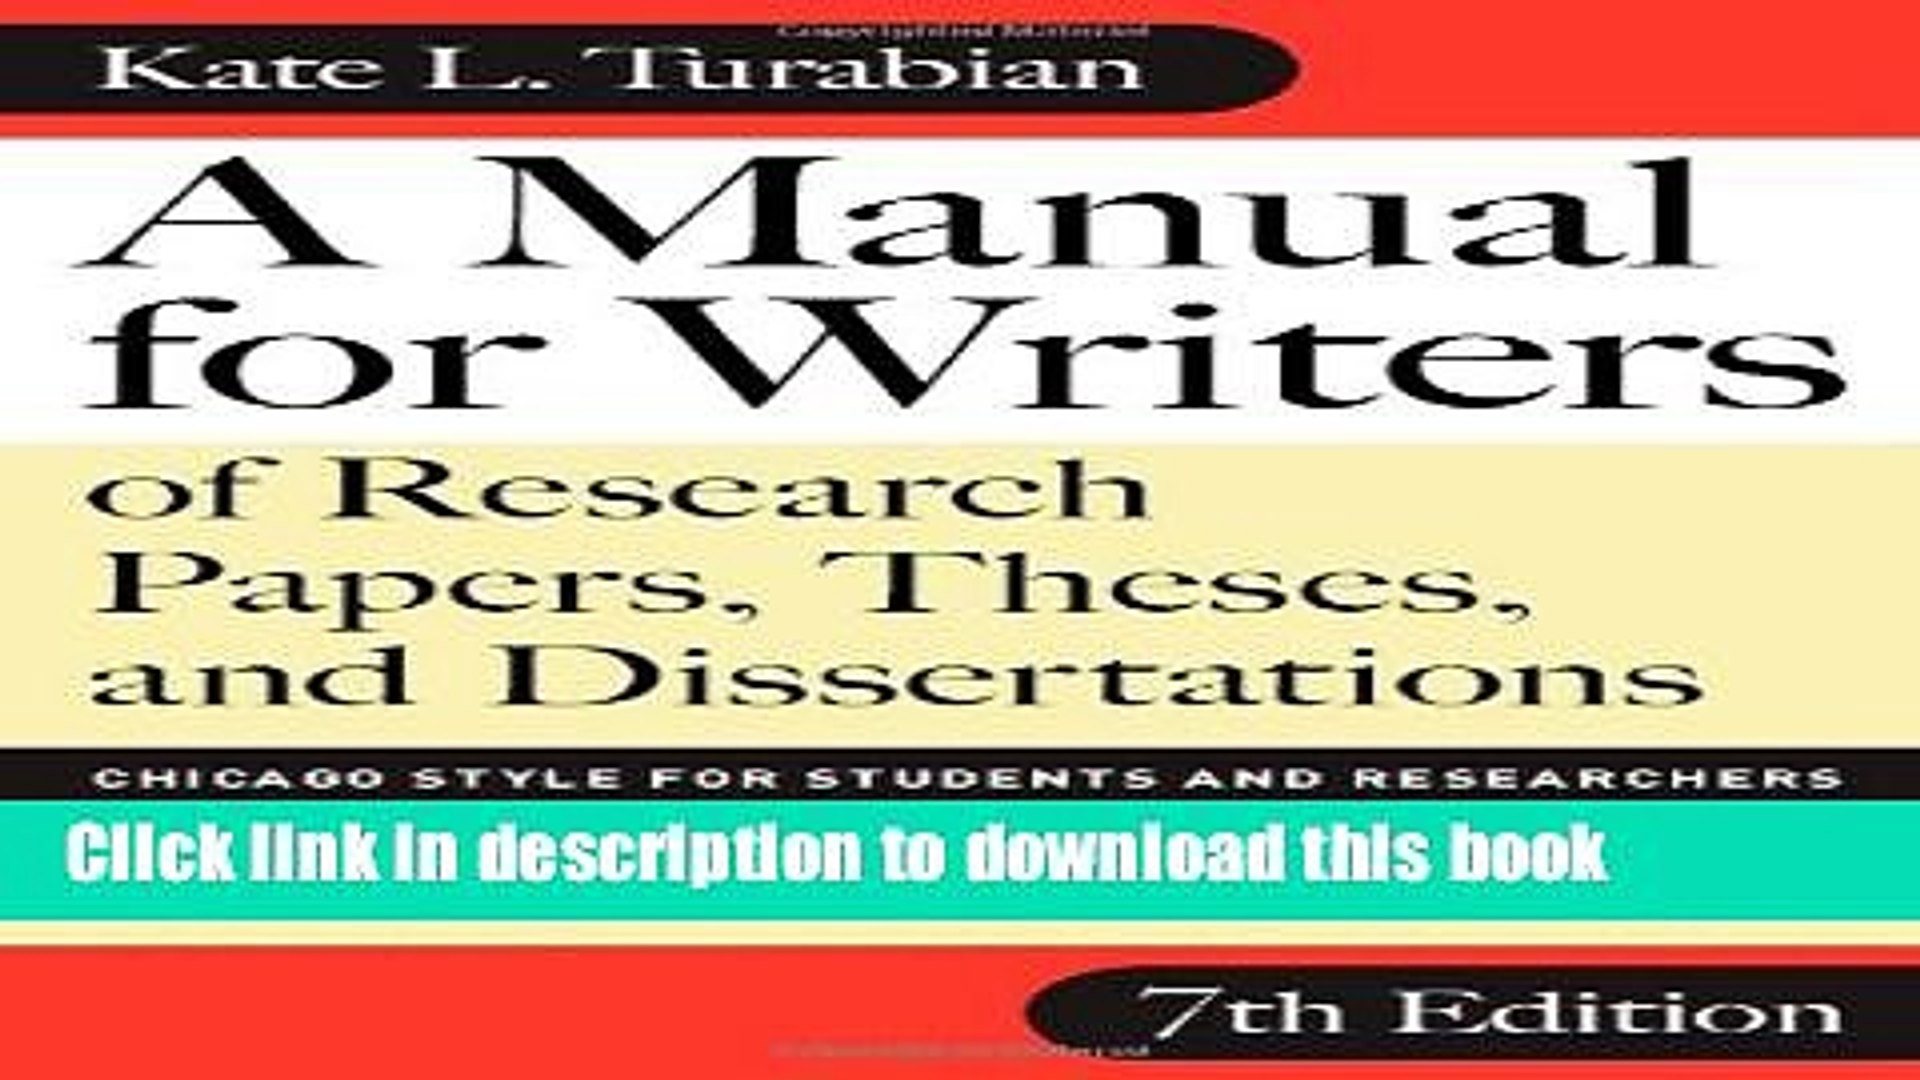 018 X1080 Hbb Manual For Writers Of Researchs Theses And Dissertations 9th Edition Frightening A Research Papers Pdf Full